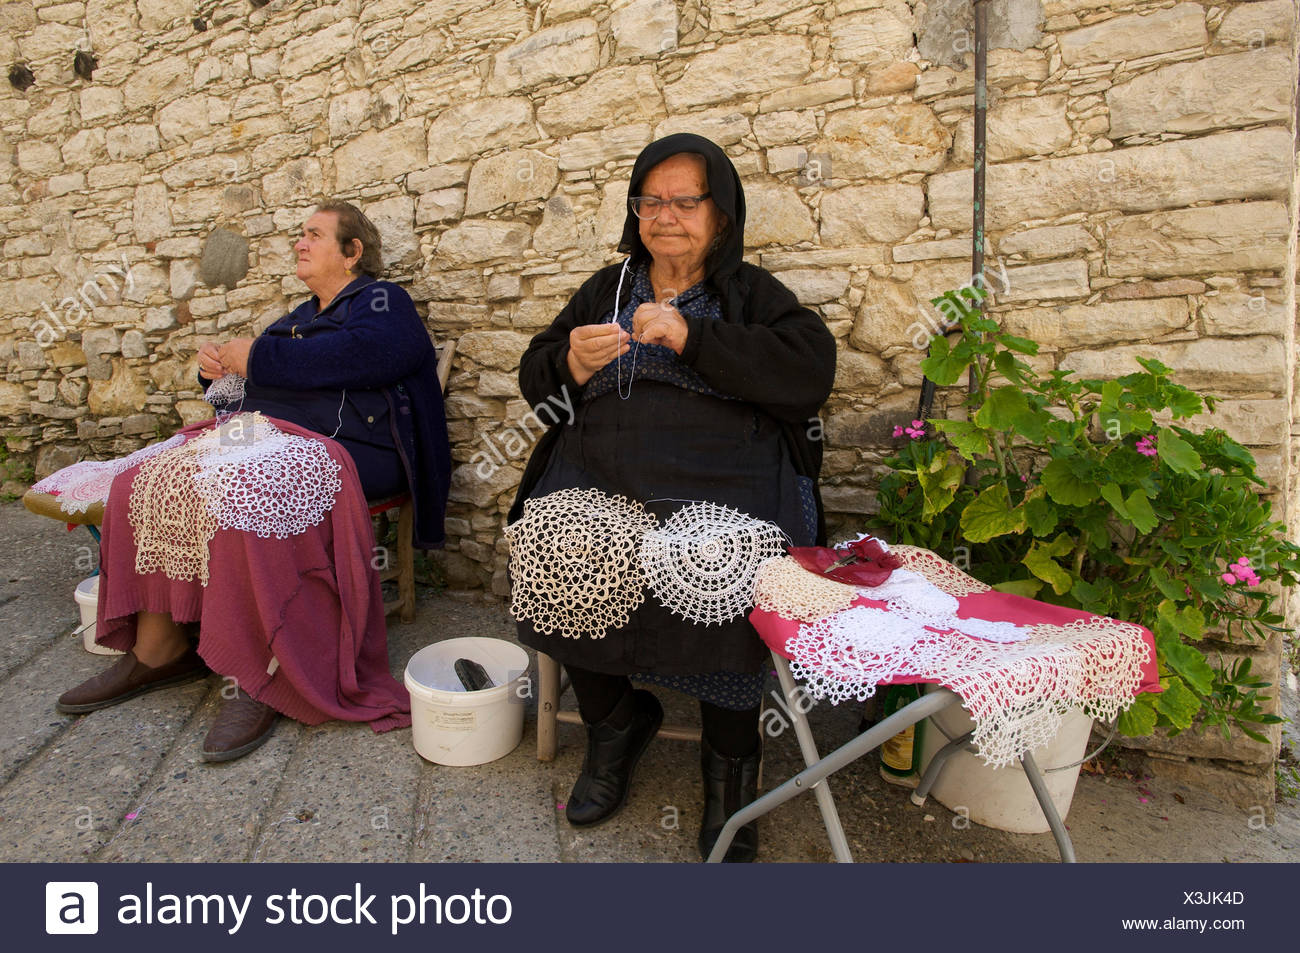 Women doing traditional crochet work in Omodos, Troodos Mountains, southern Cyprus - Stock Image